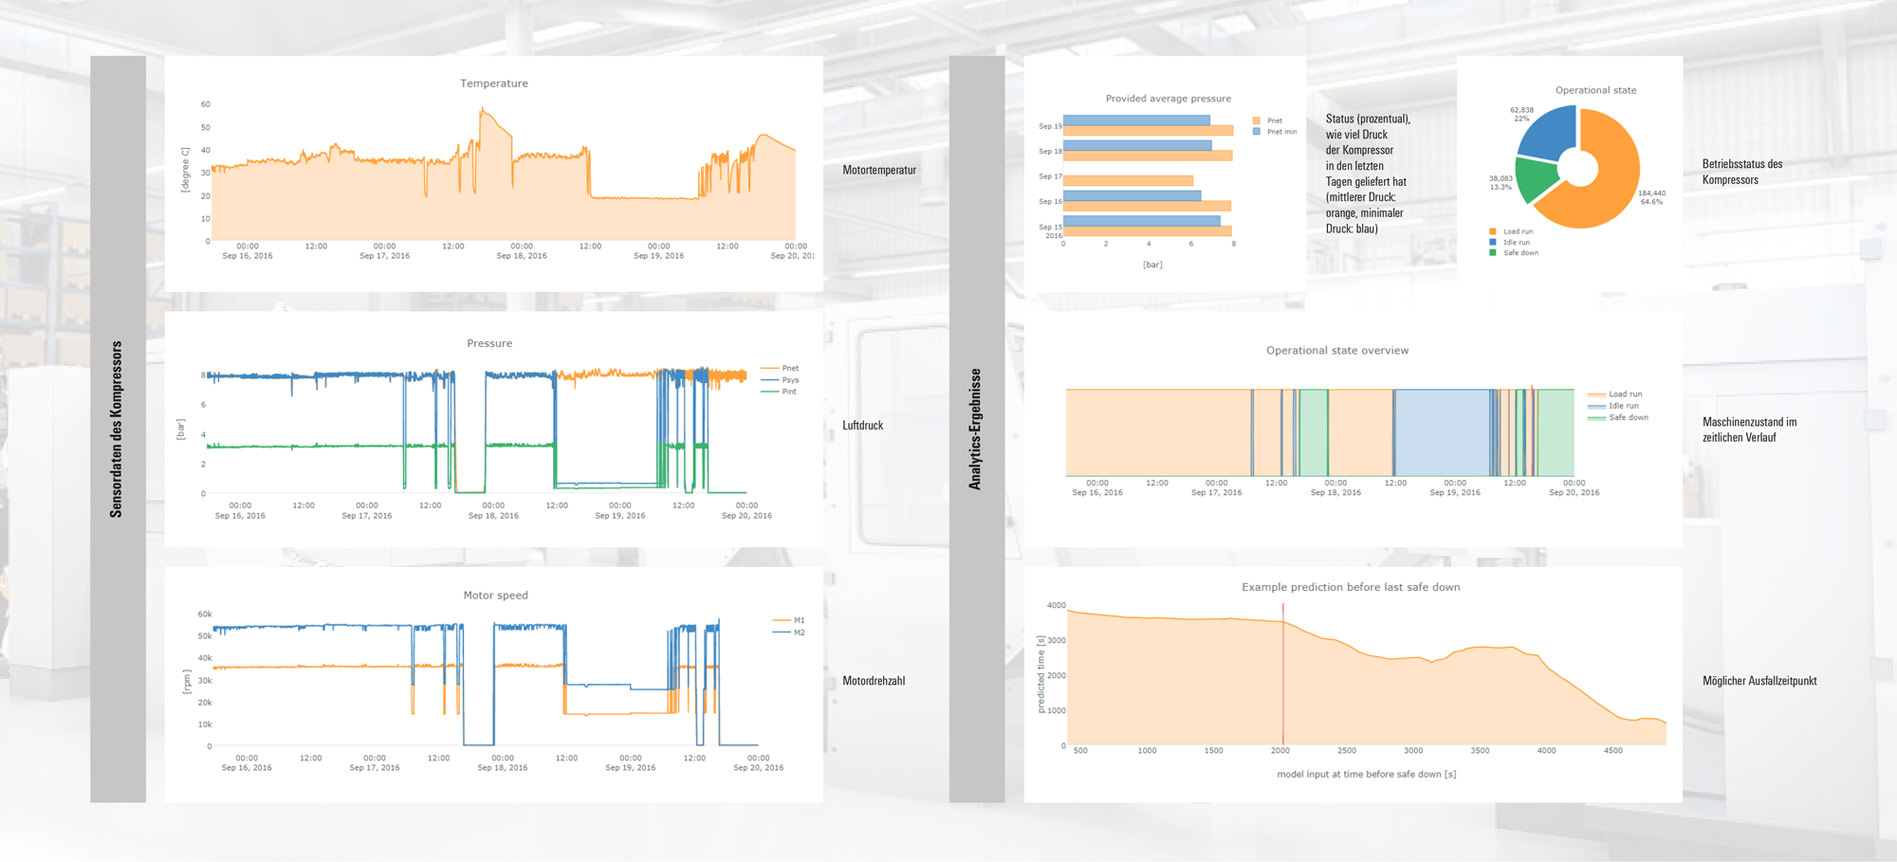 Analytics-Dashboard des High-Speed-Turbo-Kompressors (HST) von Boge